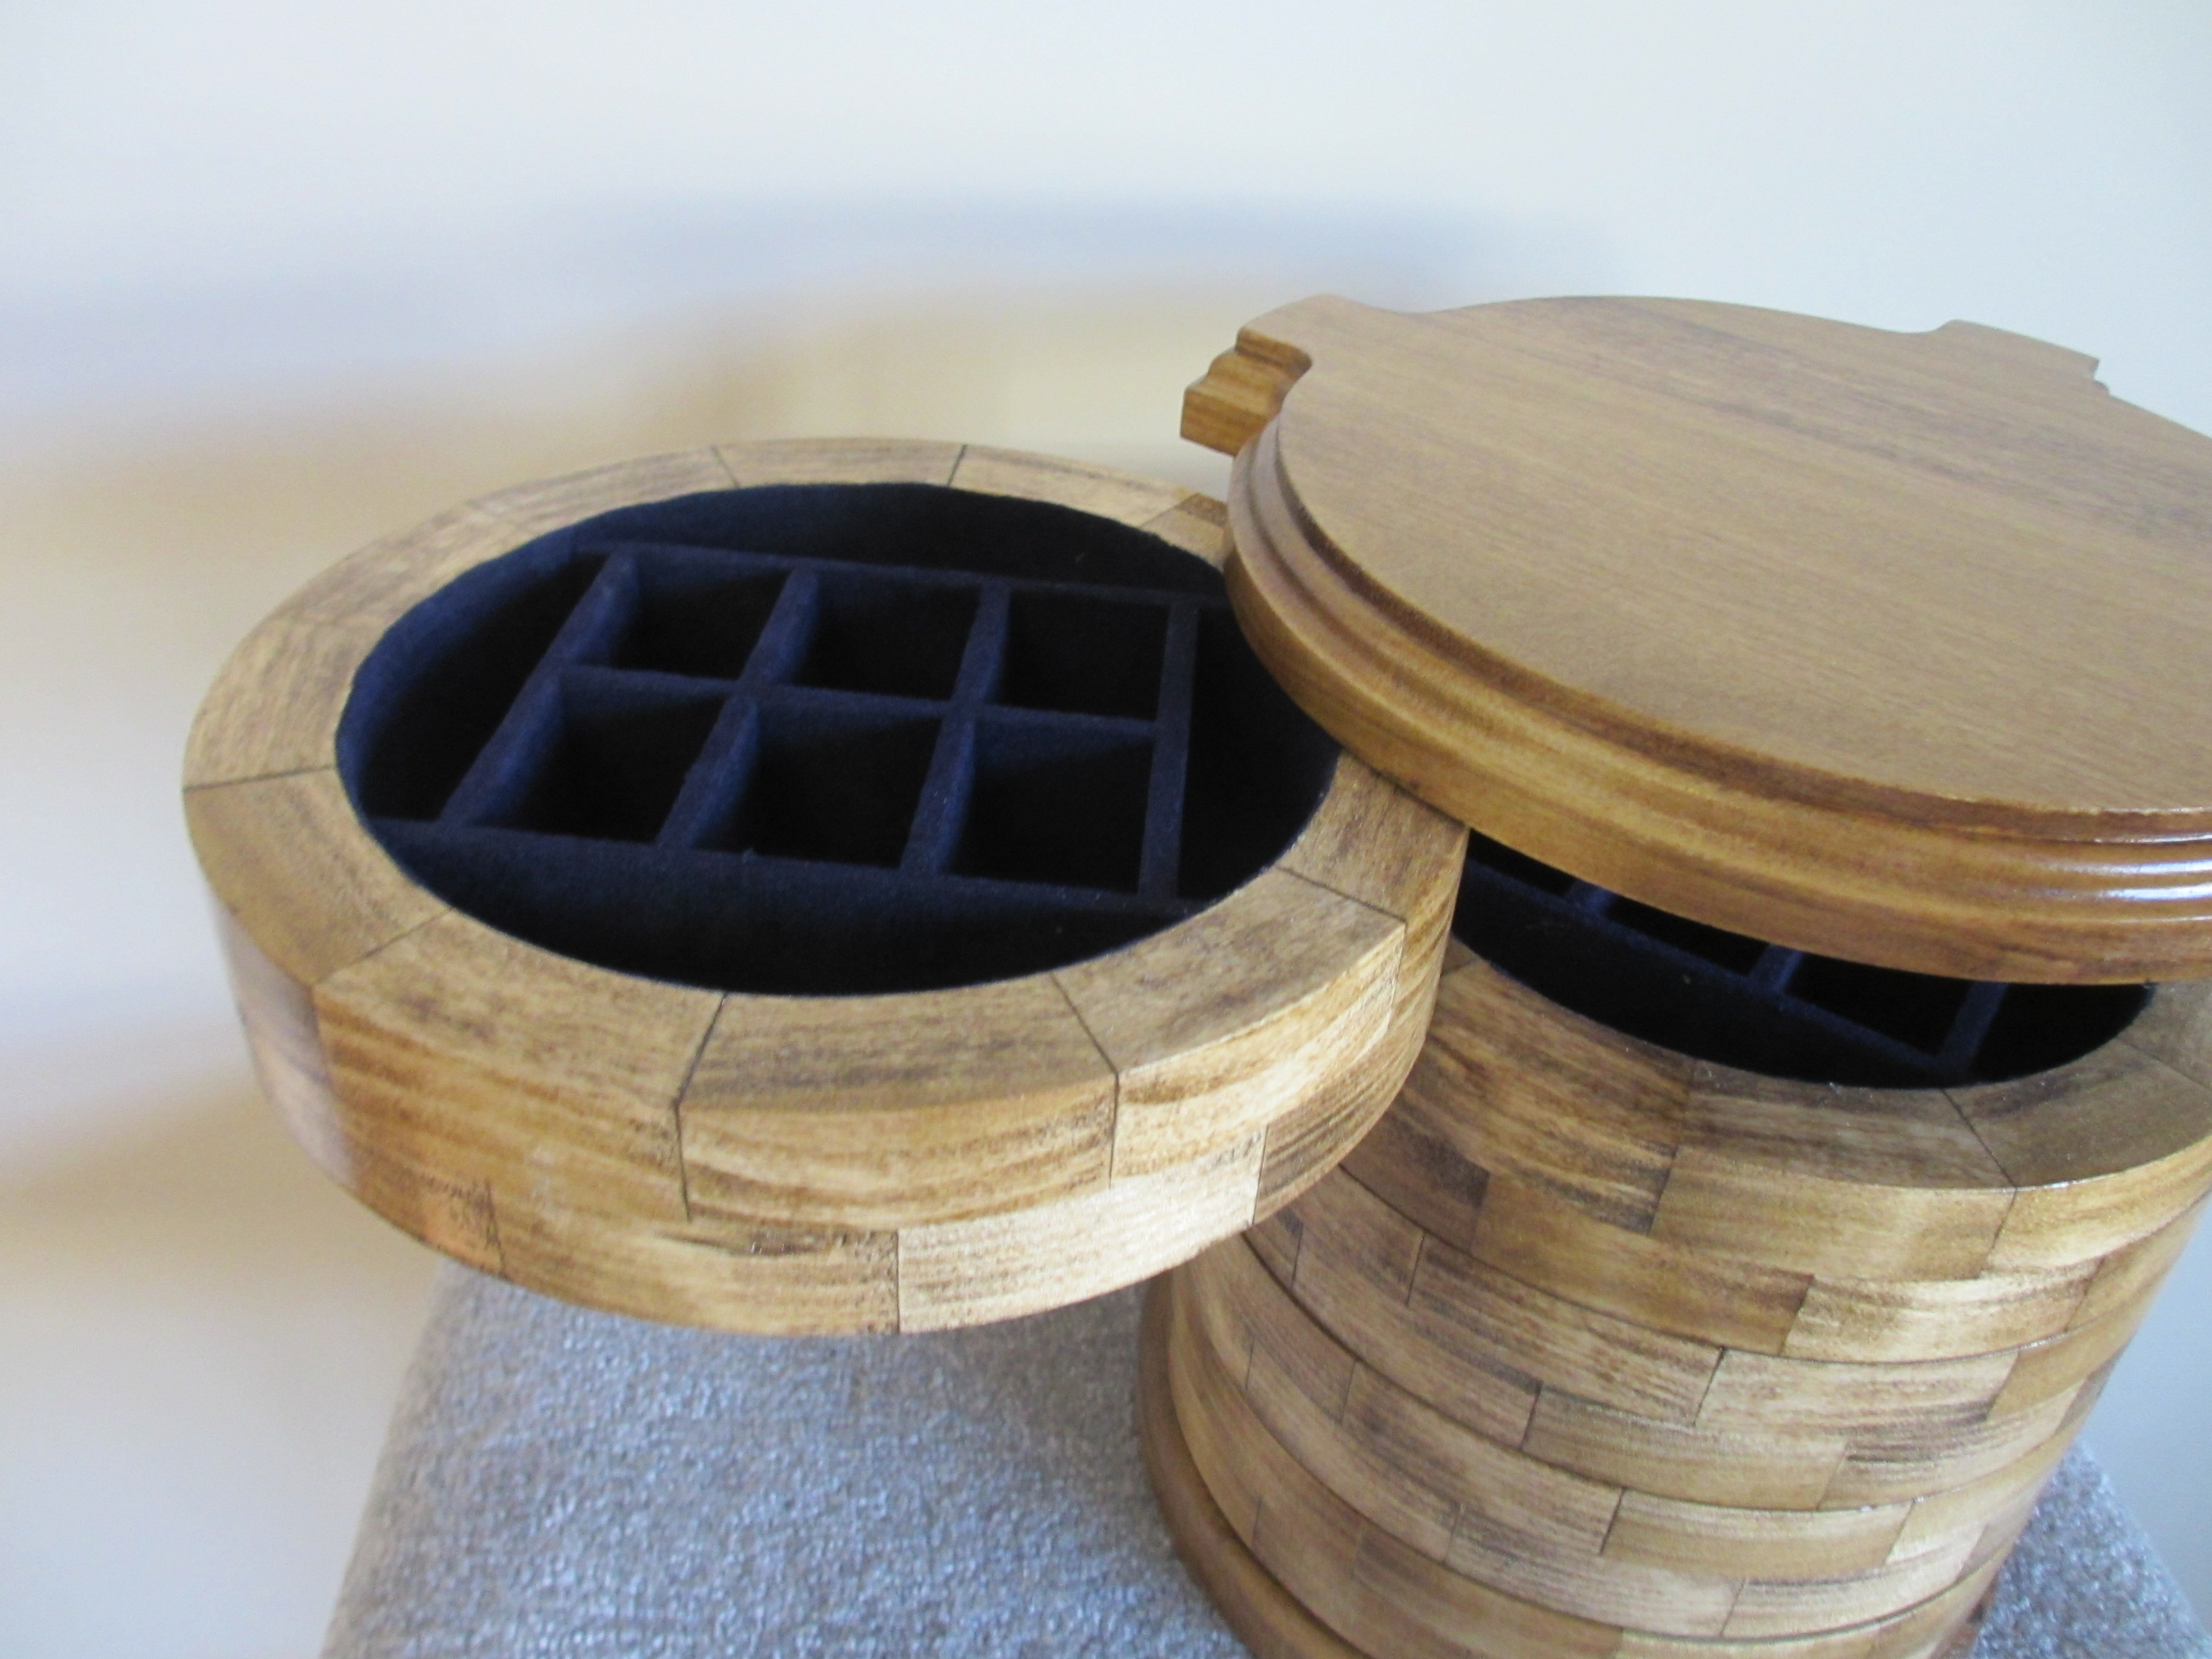 Round Jewelry Box For Future Generations To Build Upon I Already Could Make Some Improvements If Were Another One But M Content With The